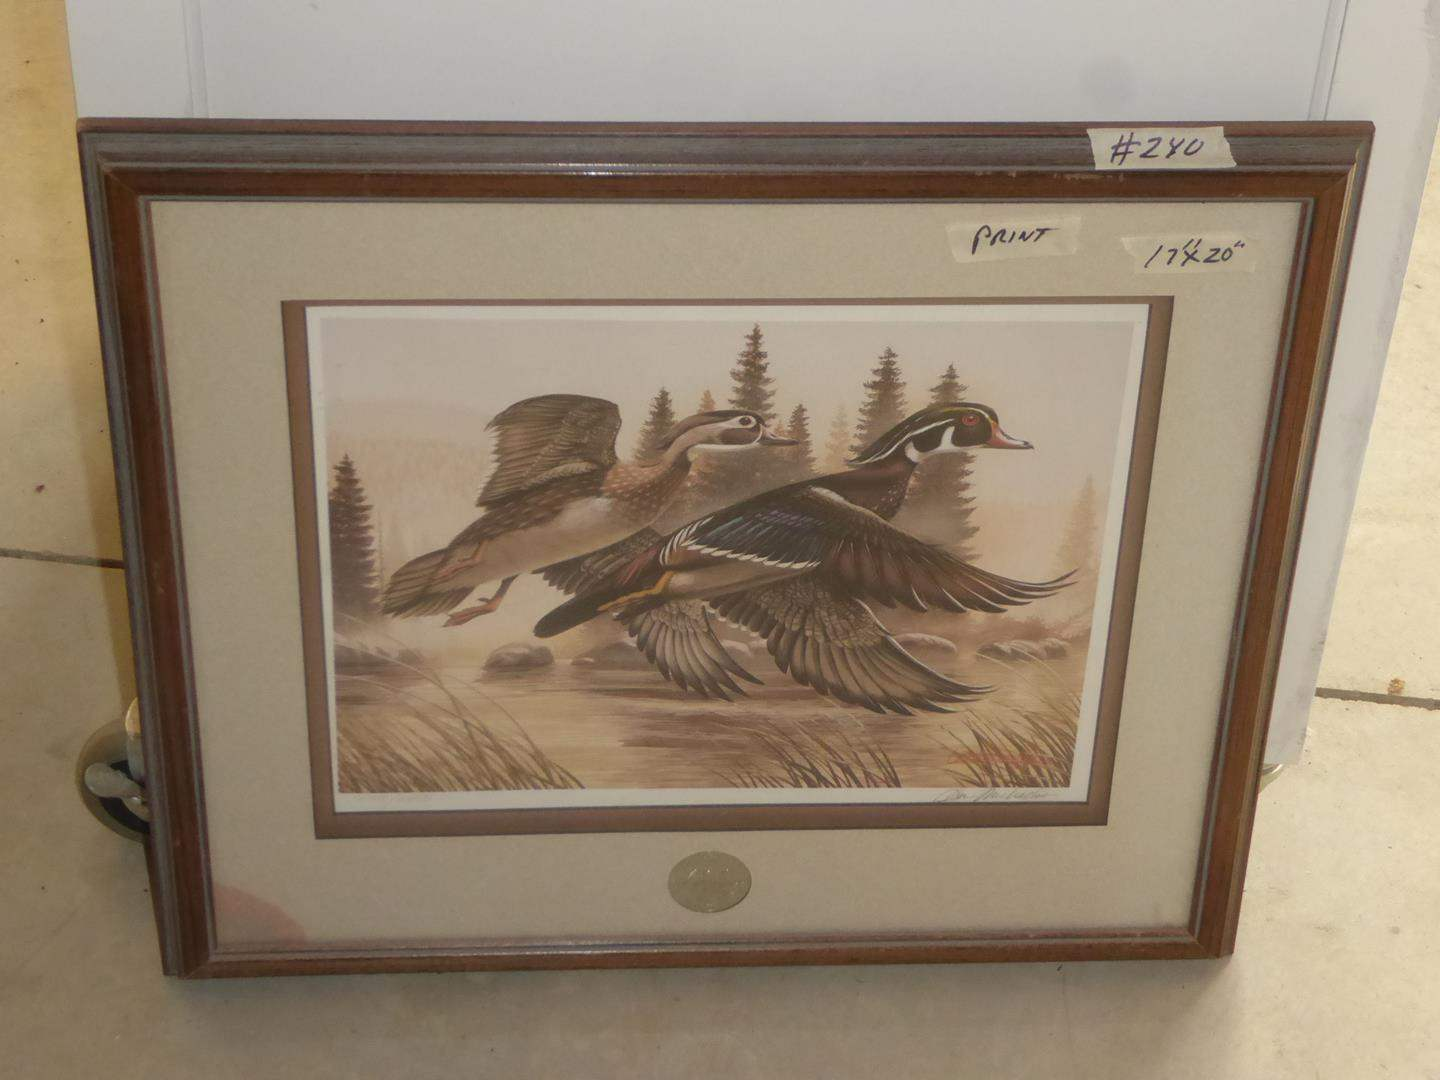 Lot # 240 - Framed Signed Numbered Ducks Unlimited Print 1254/2950 (main image)